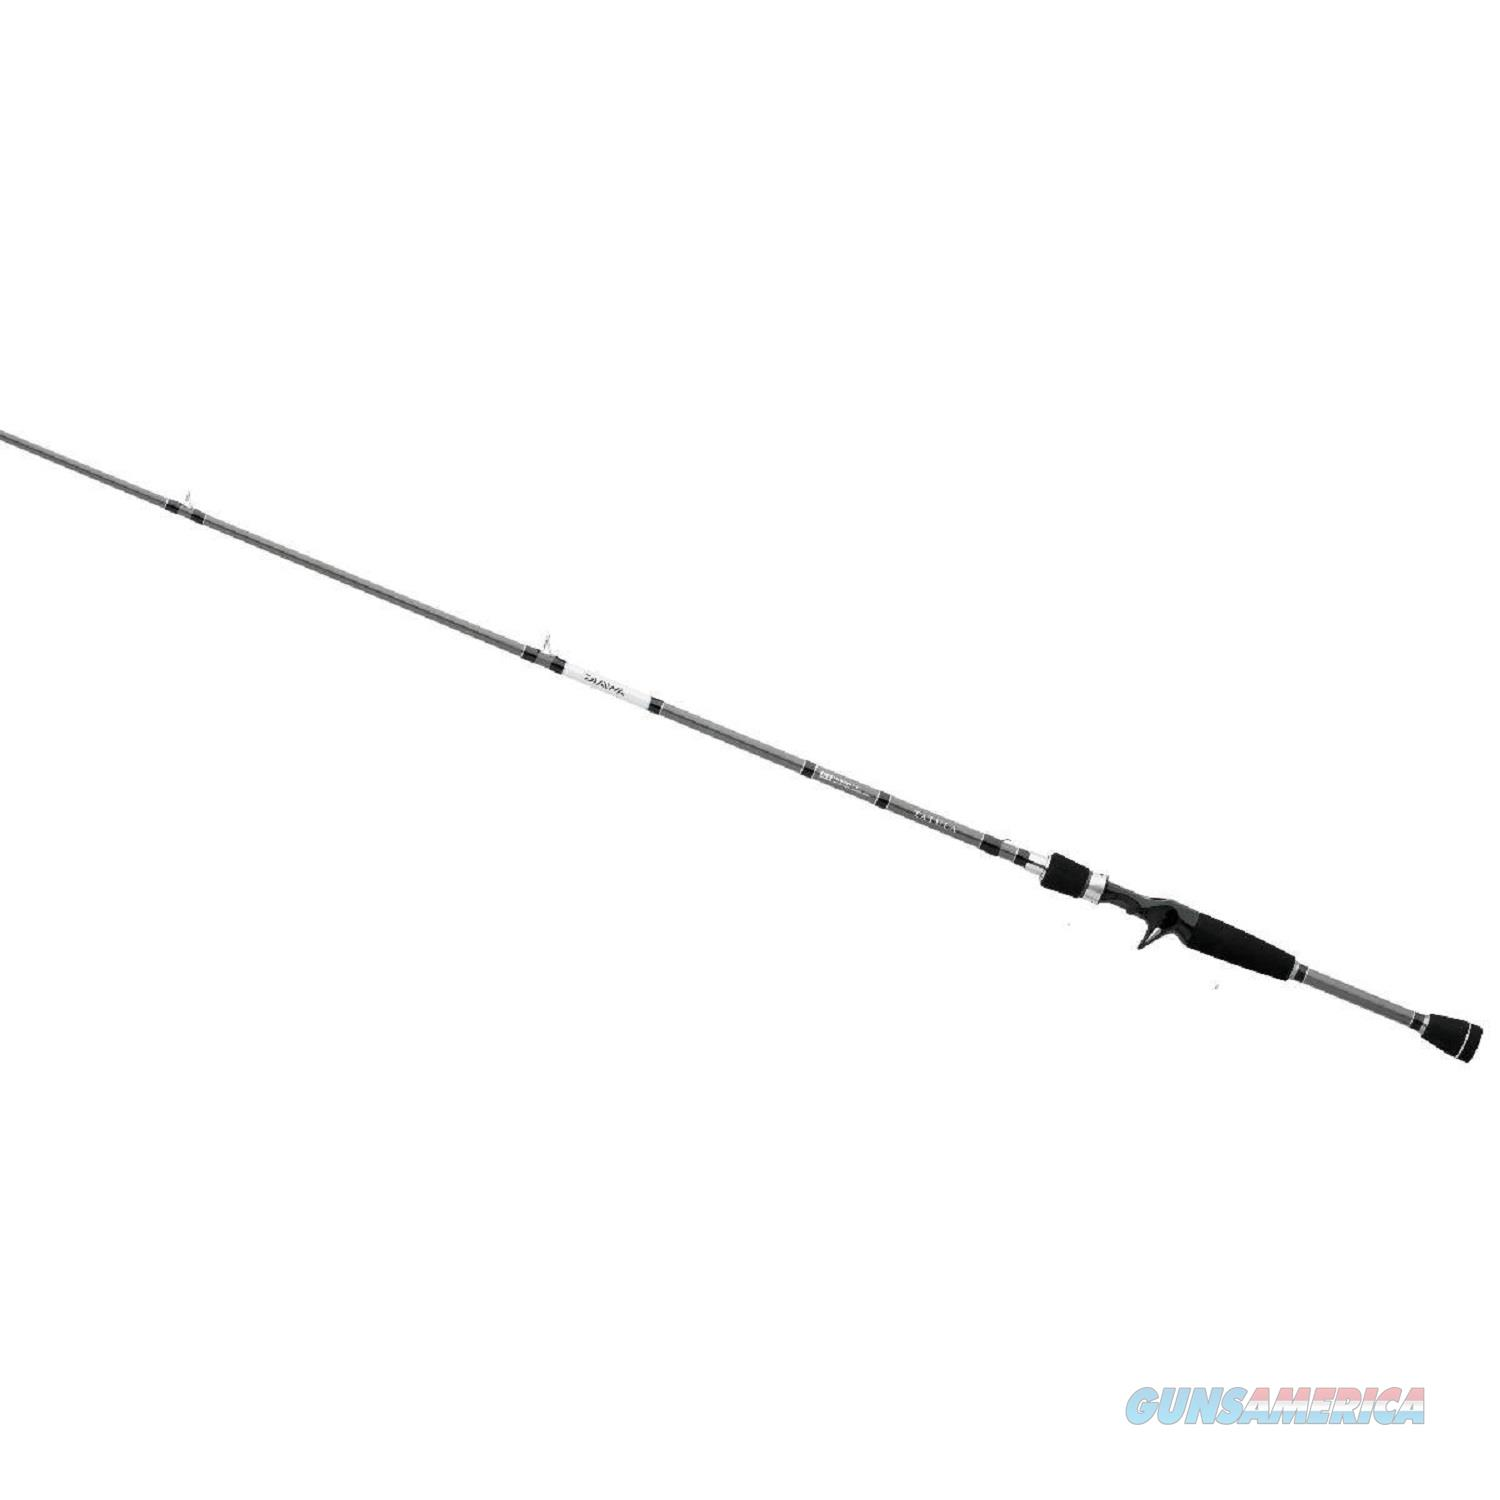 Daiwa Tatula Xt Rod 7 Ft One Piece Casting Me For Sale Medium Action Txt701mfb Non Guns